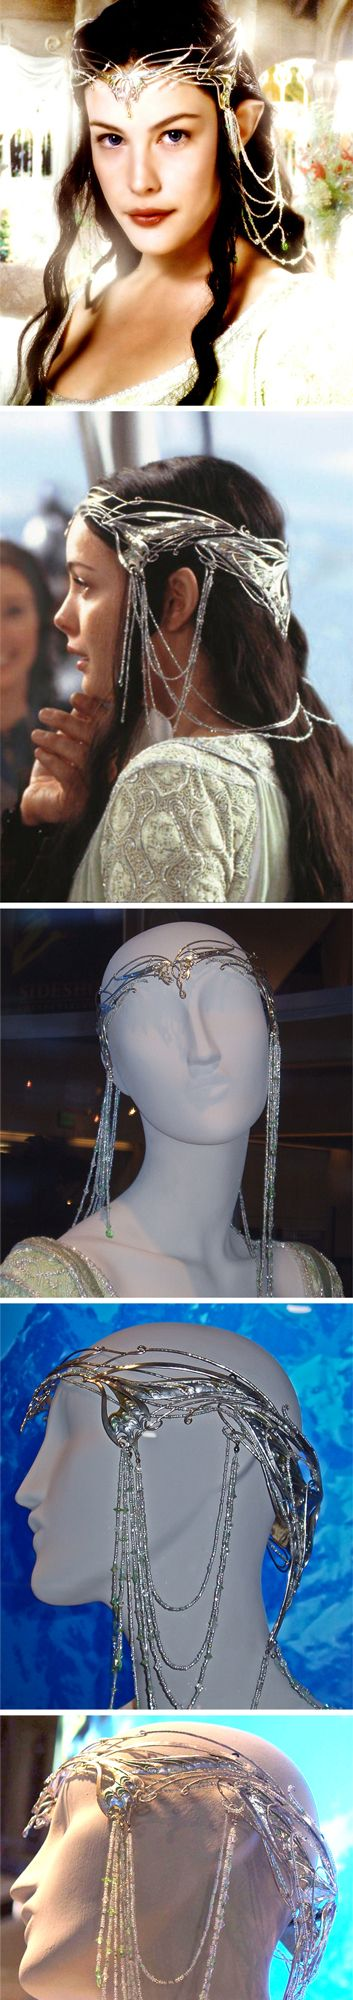 Arwen's Butterfly crown made by Jasmine Watson. Seen on actress Liv Tyler in The Lord of the Rings movies. Liv wears an elaborate crown of silver wire, that has chains with green crystals and semi-precious stones. There are white/silver rochaille beads with green stone beads spaced around on the chains. The crown is actually two parts.